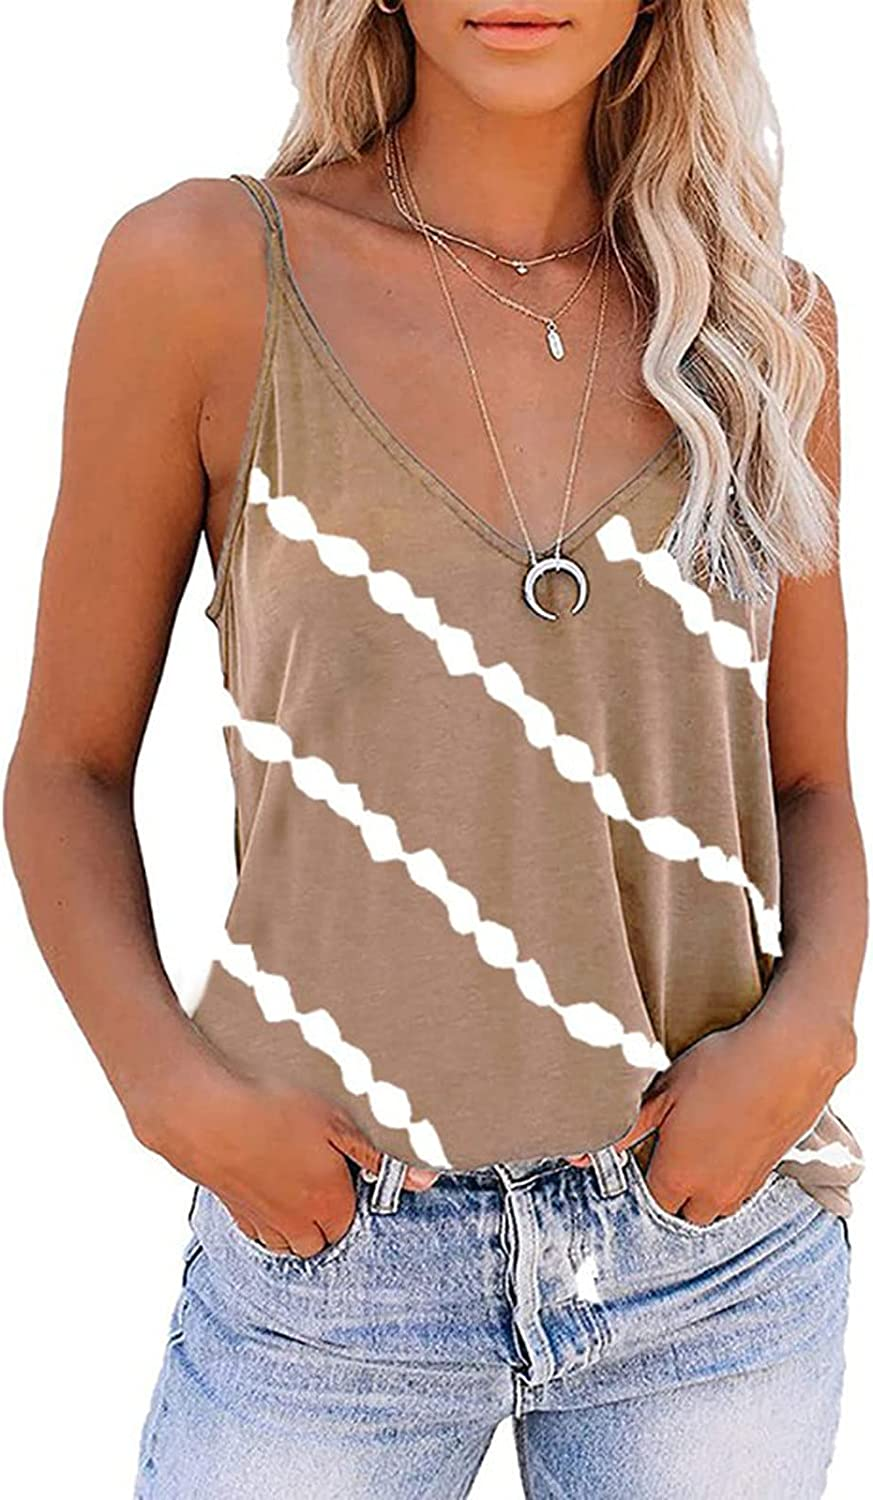 AODONG Summer Tops for Women, Sexy V Neck Tank Tops Solid Sleeveless Striped T Shirts Tops Loose Regular T-Shirts Tees